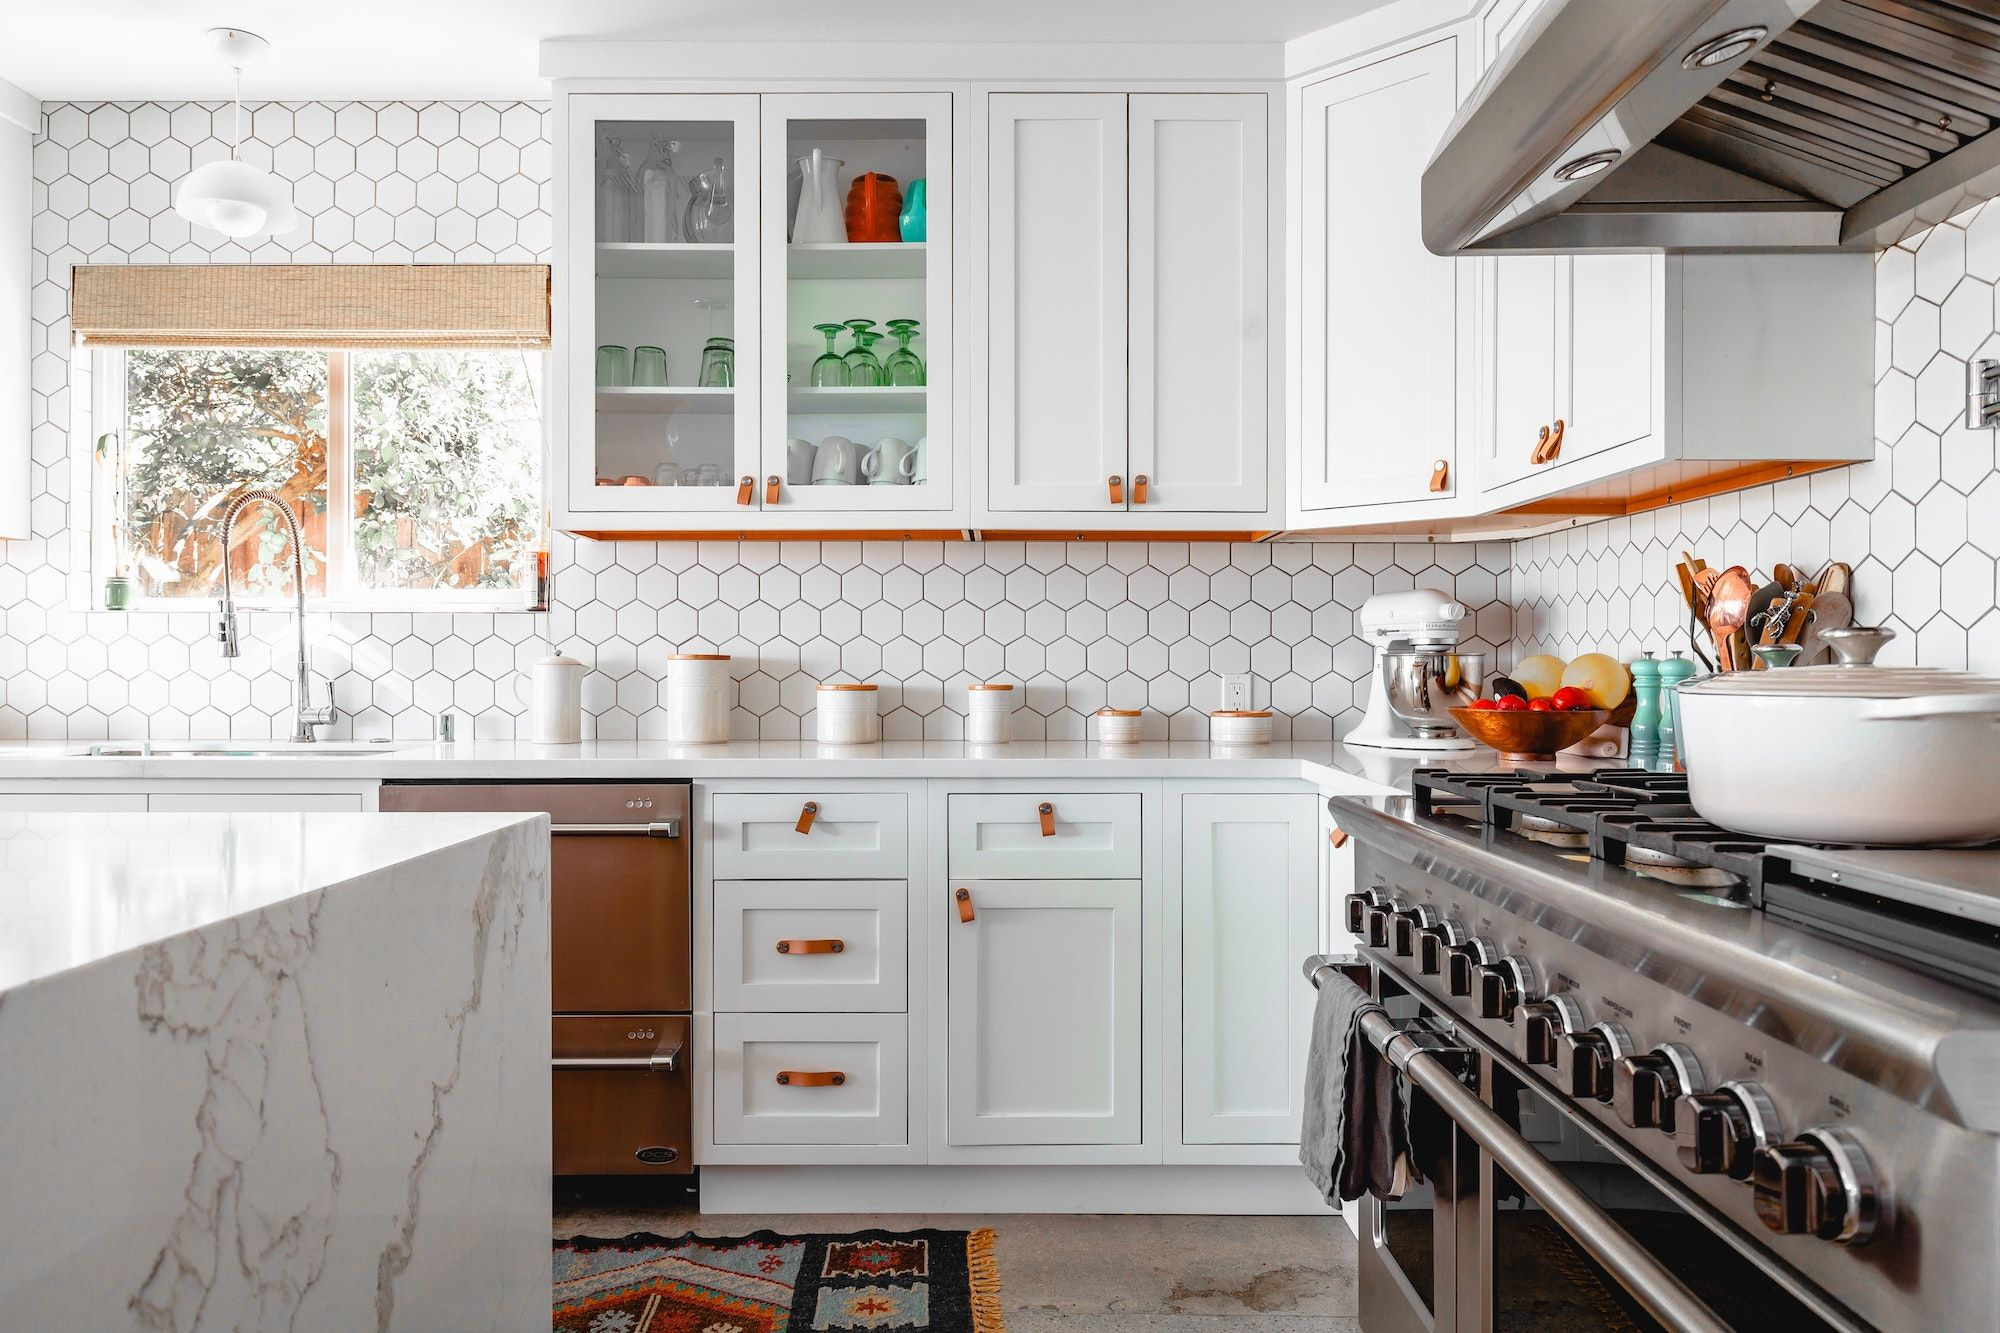 5 Surprisingly Germy Kitchen Items And The Right Way To Disinfect Them In 2020 Kitchen Renovation Kitchen Remodel Kitchen Trends